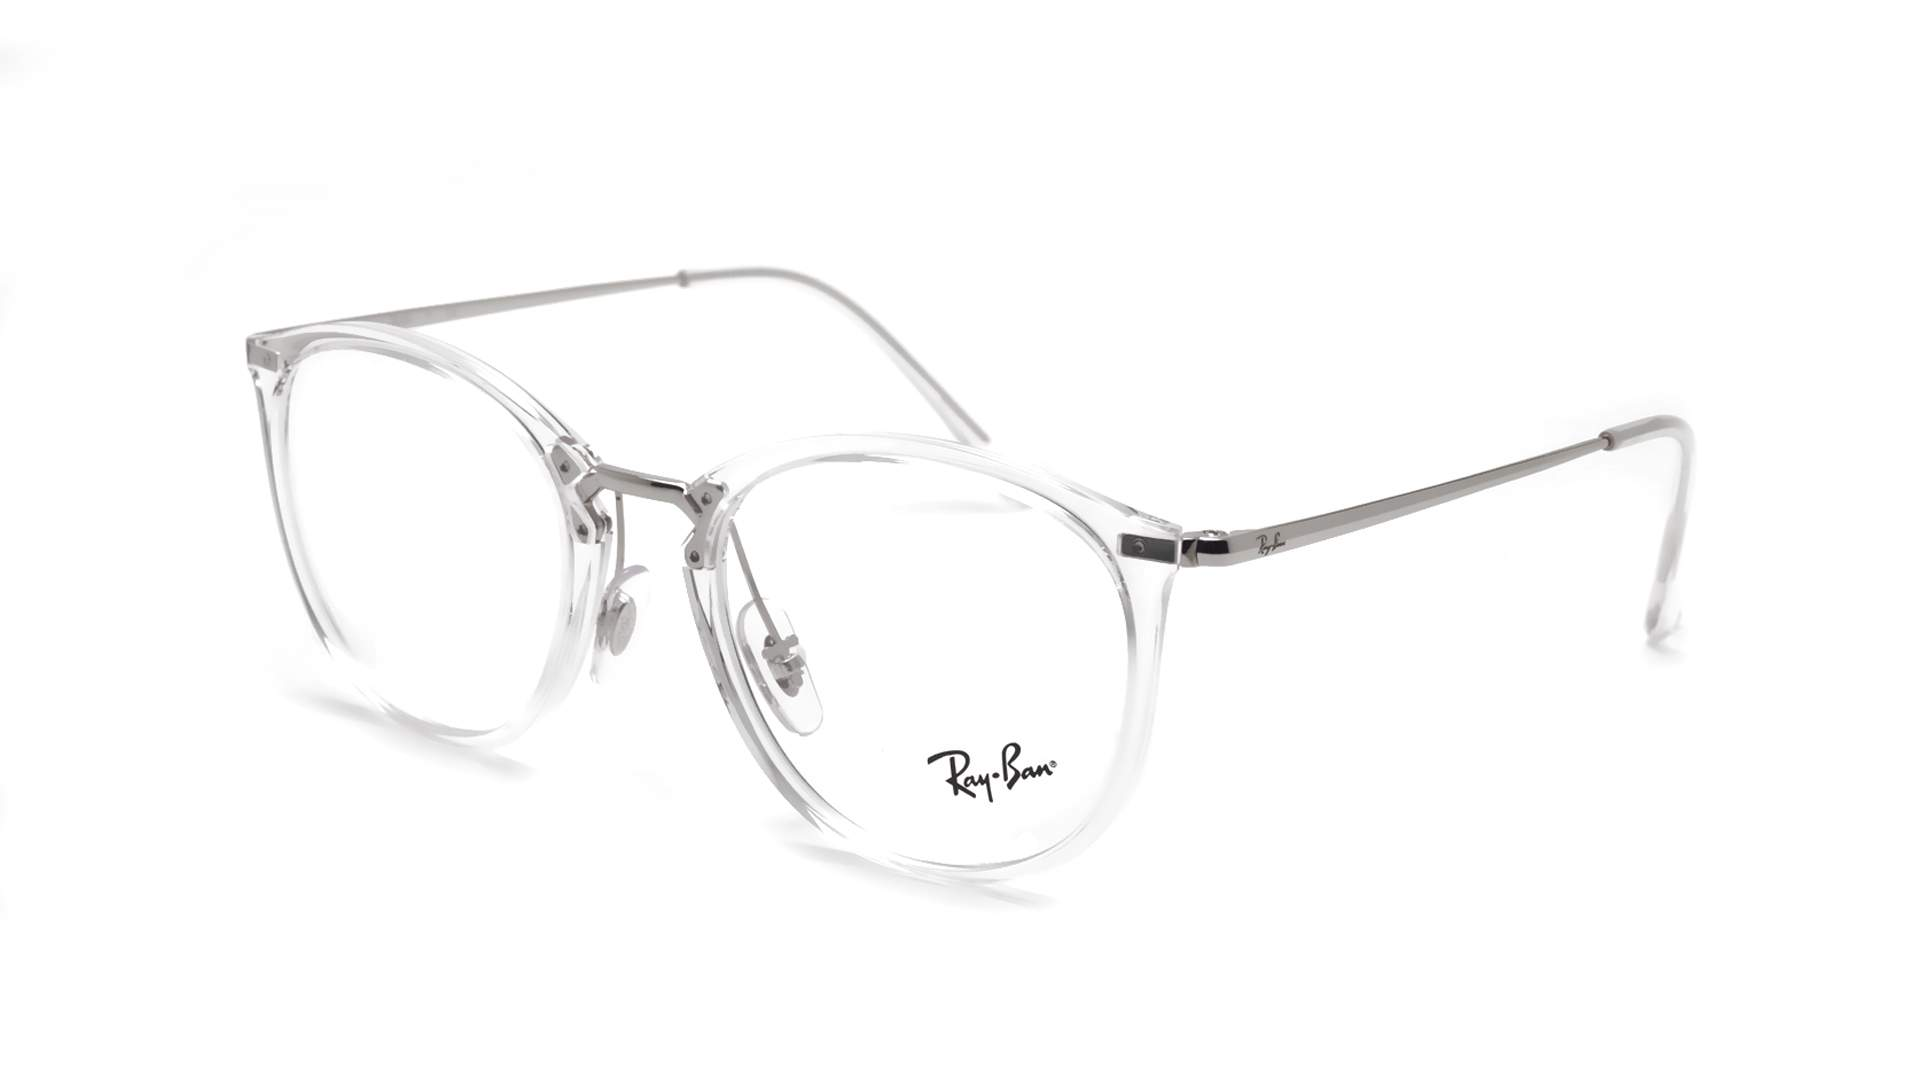 830db8964ebc2 Eyeglasses Ray-Ban RX7140 RB7140 2001 51-20 Clear Medium